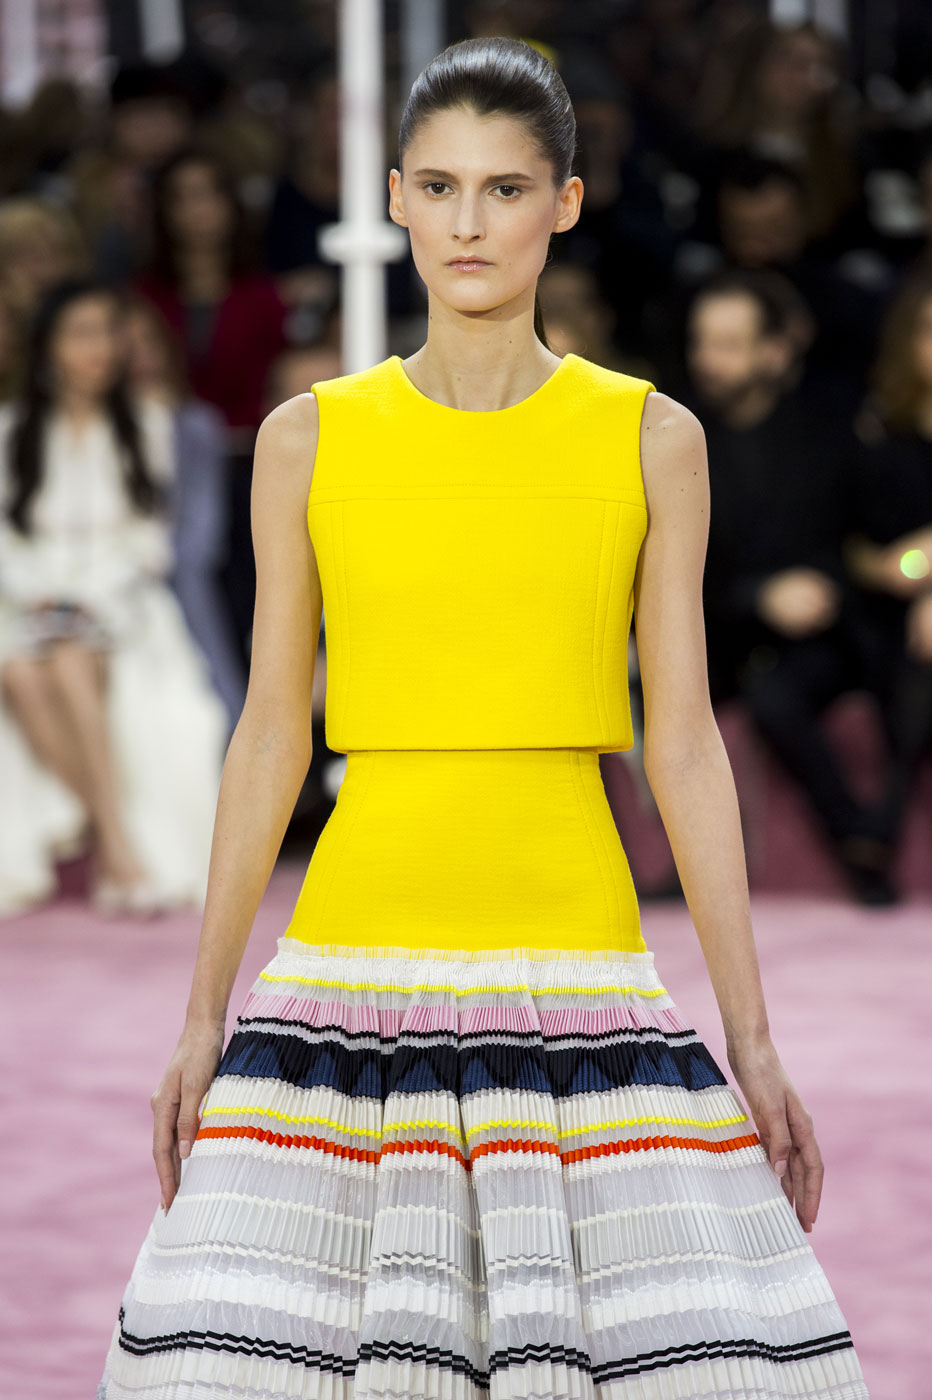 Christian-Dior-fashion-runway-show-haute-couture-paris-spring-summer-2015-the-impression-095